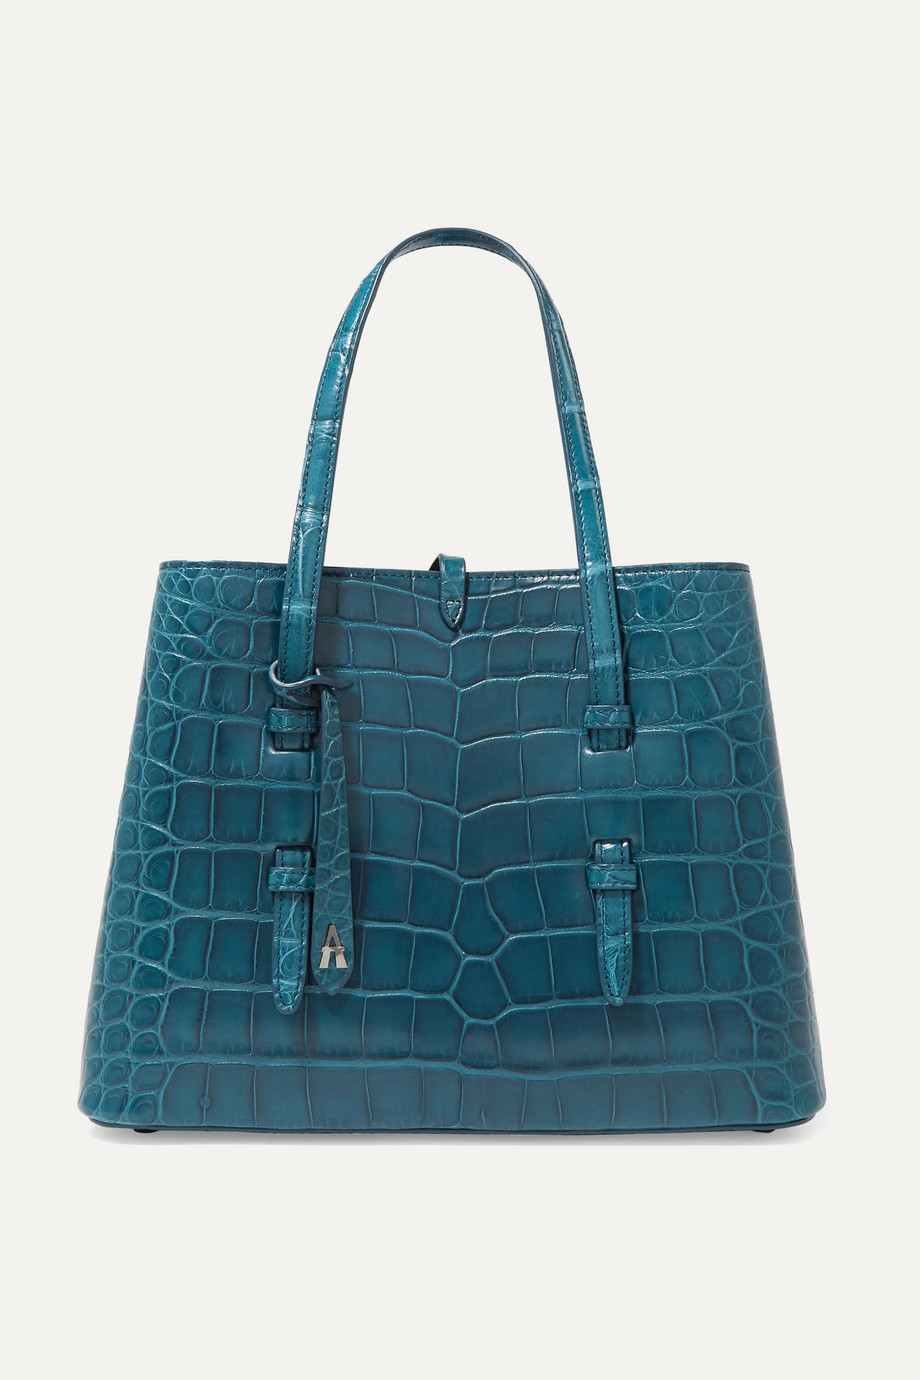 Alaïa Sac à main en alligator Mina Small